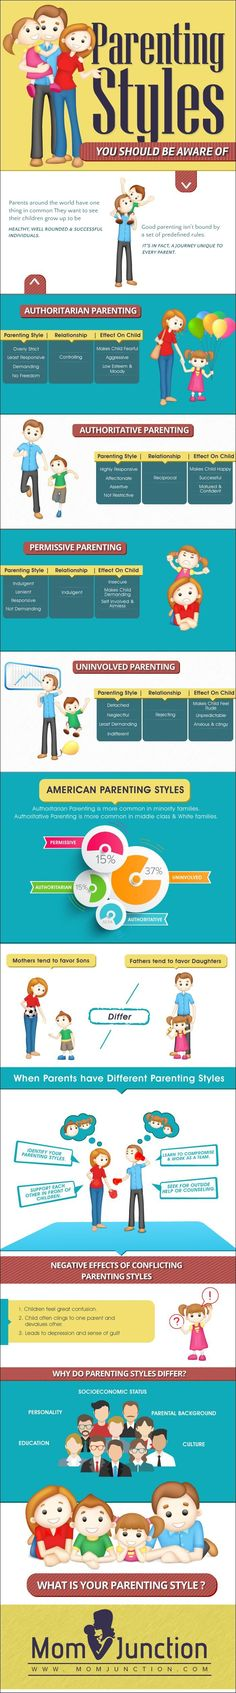 Parenting styles chart - Are you aware that different parenting styles have different impact & influences a child's development. Read further to know which one is your parenting style